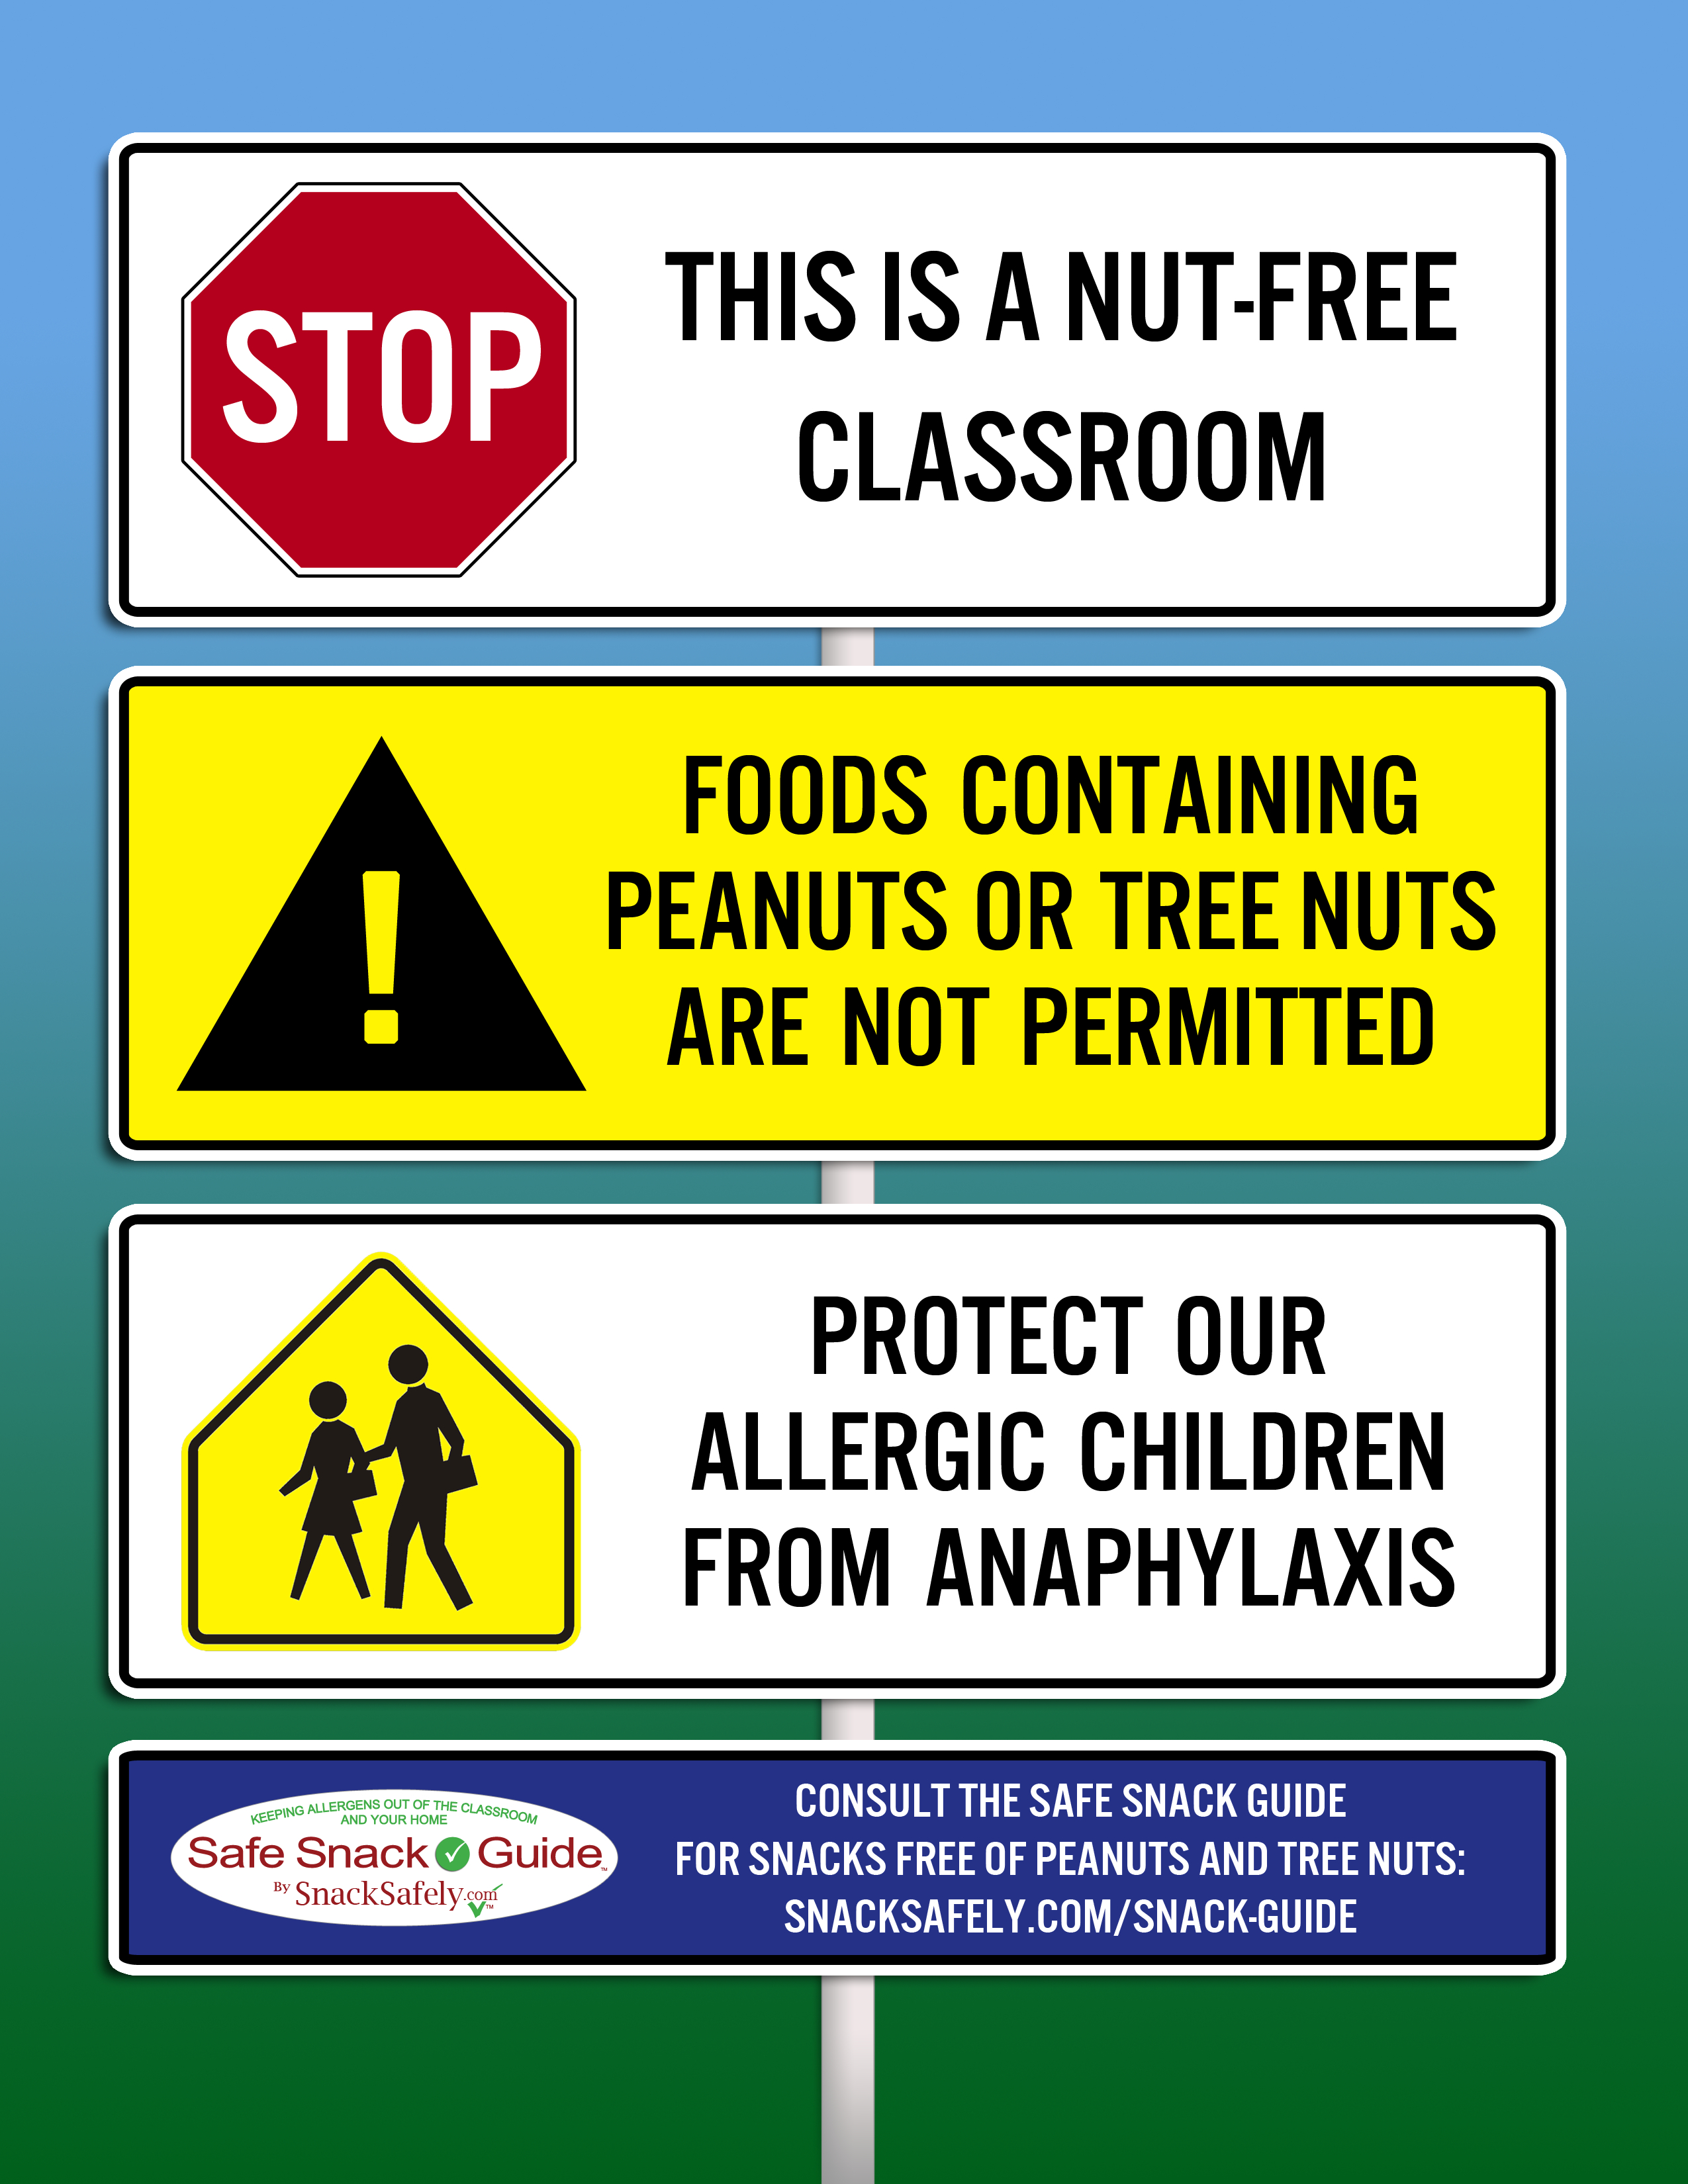 Nut-Free Notice Graphics For Your School   Snacksafely Articles - Printable Peanut Free Classroom Signs